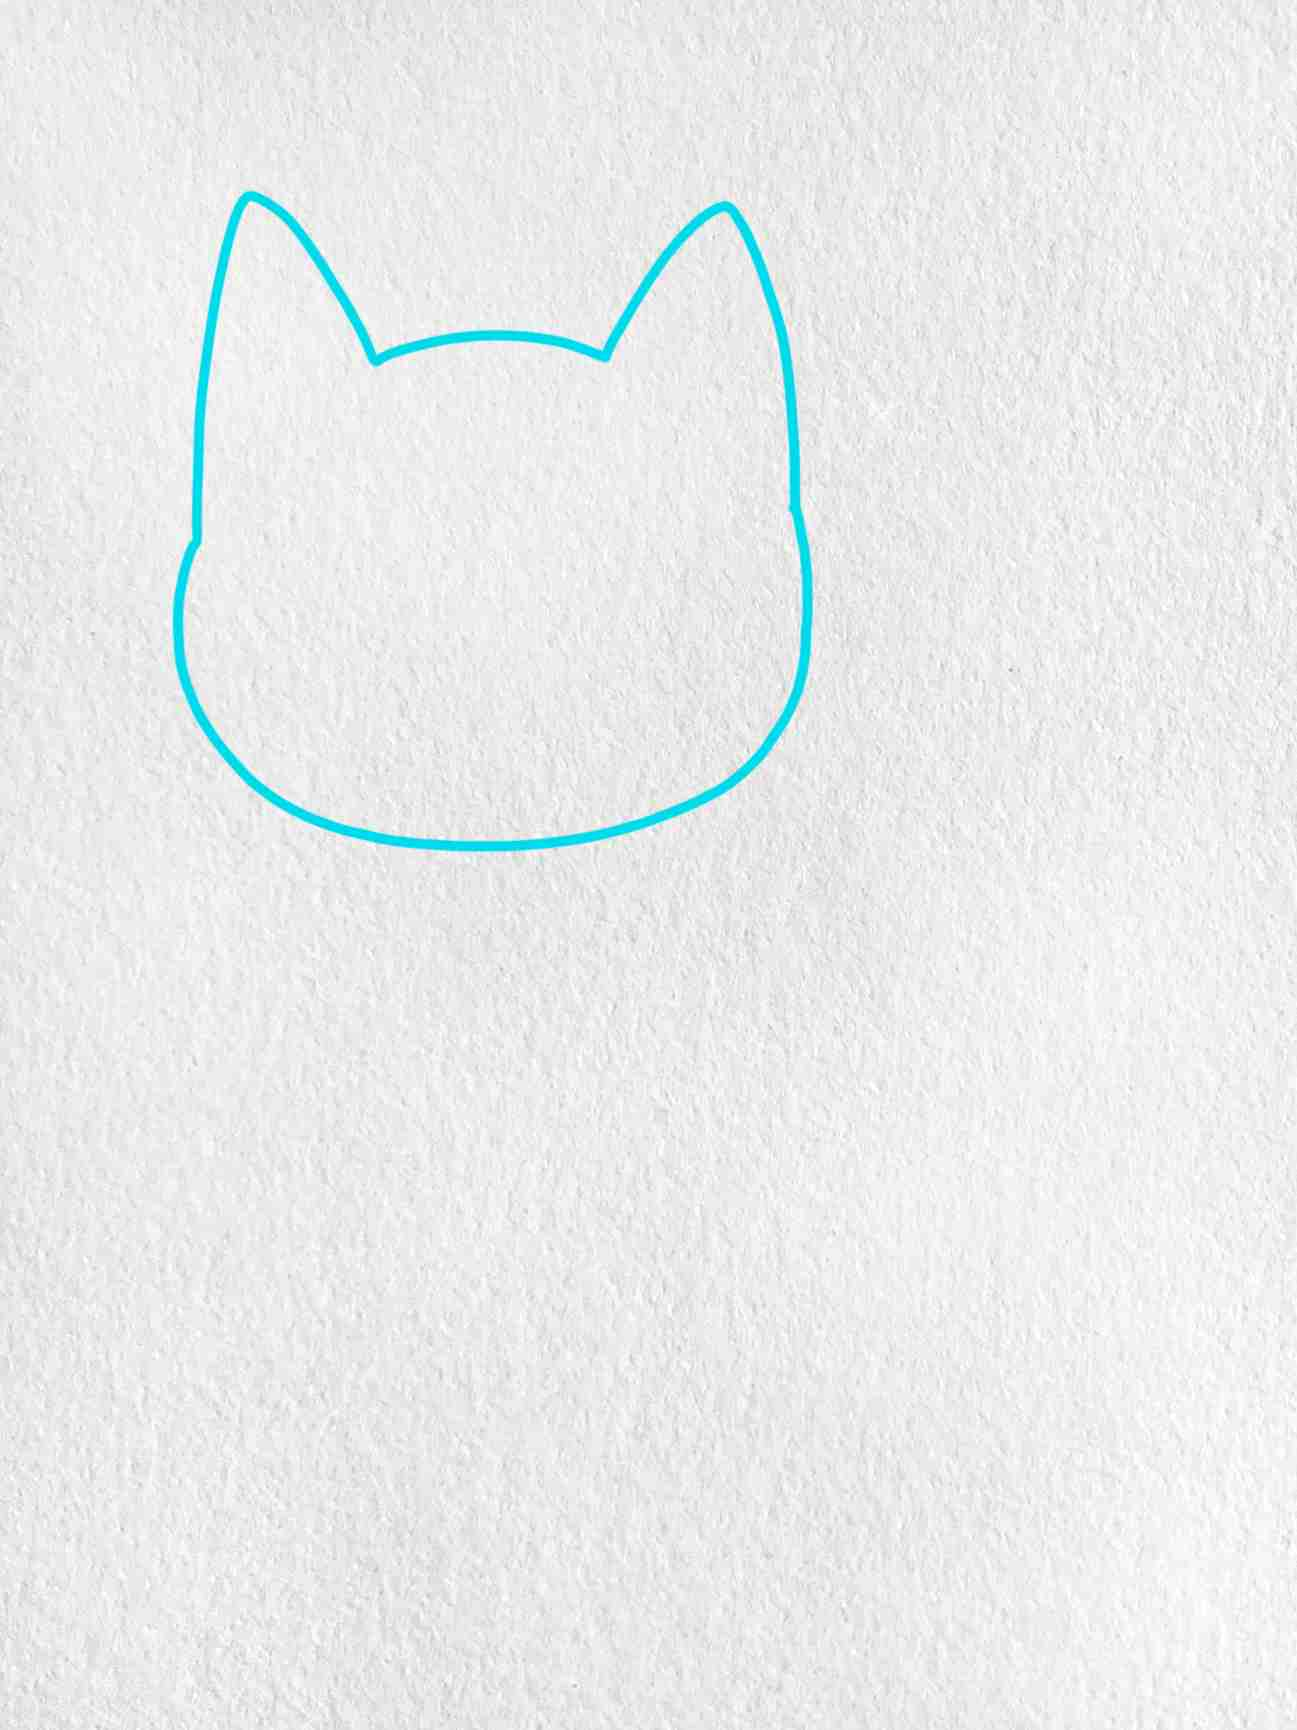 Cat Drawing For Kids: Step 1